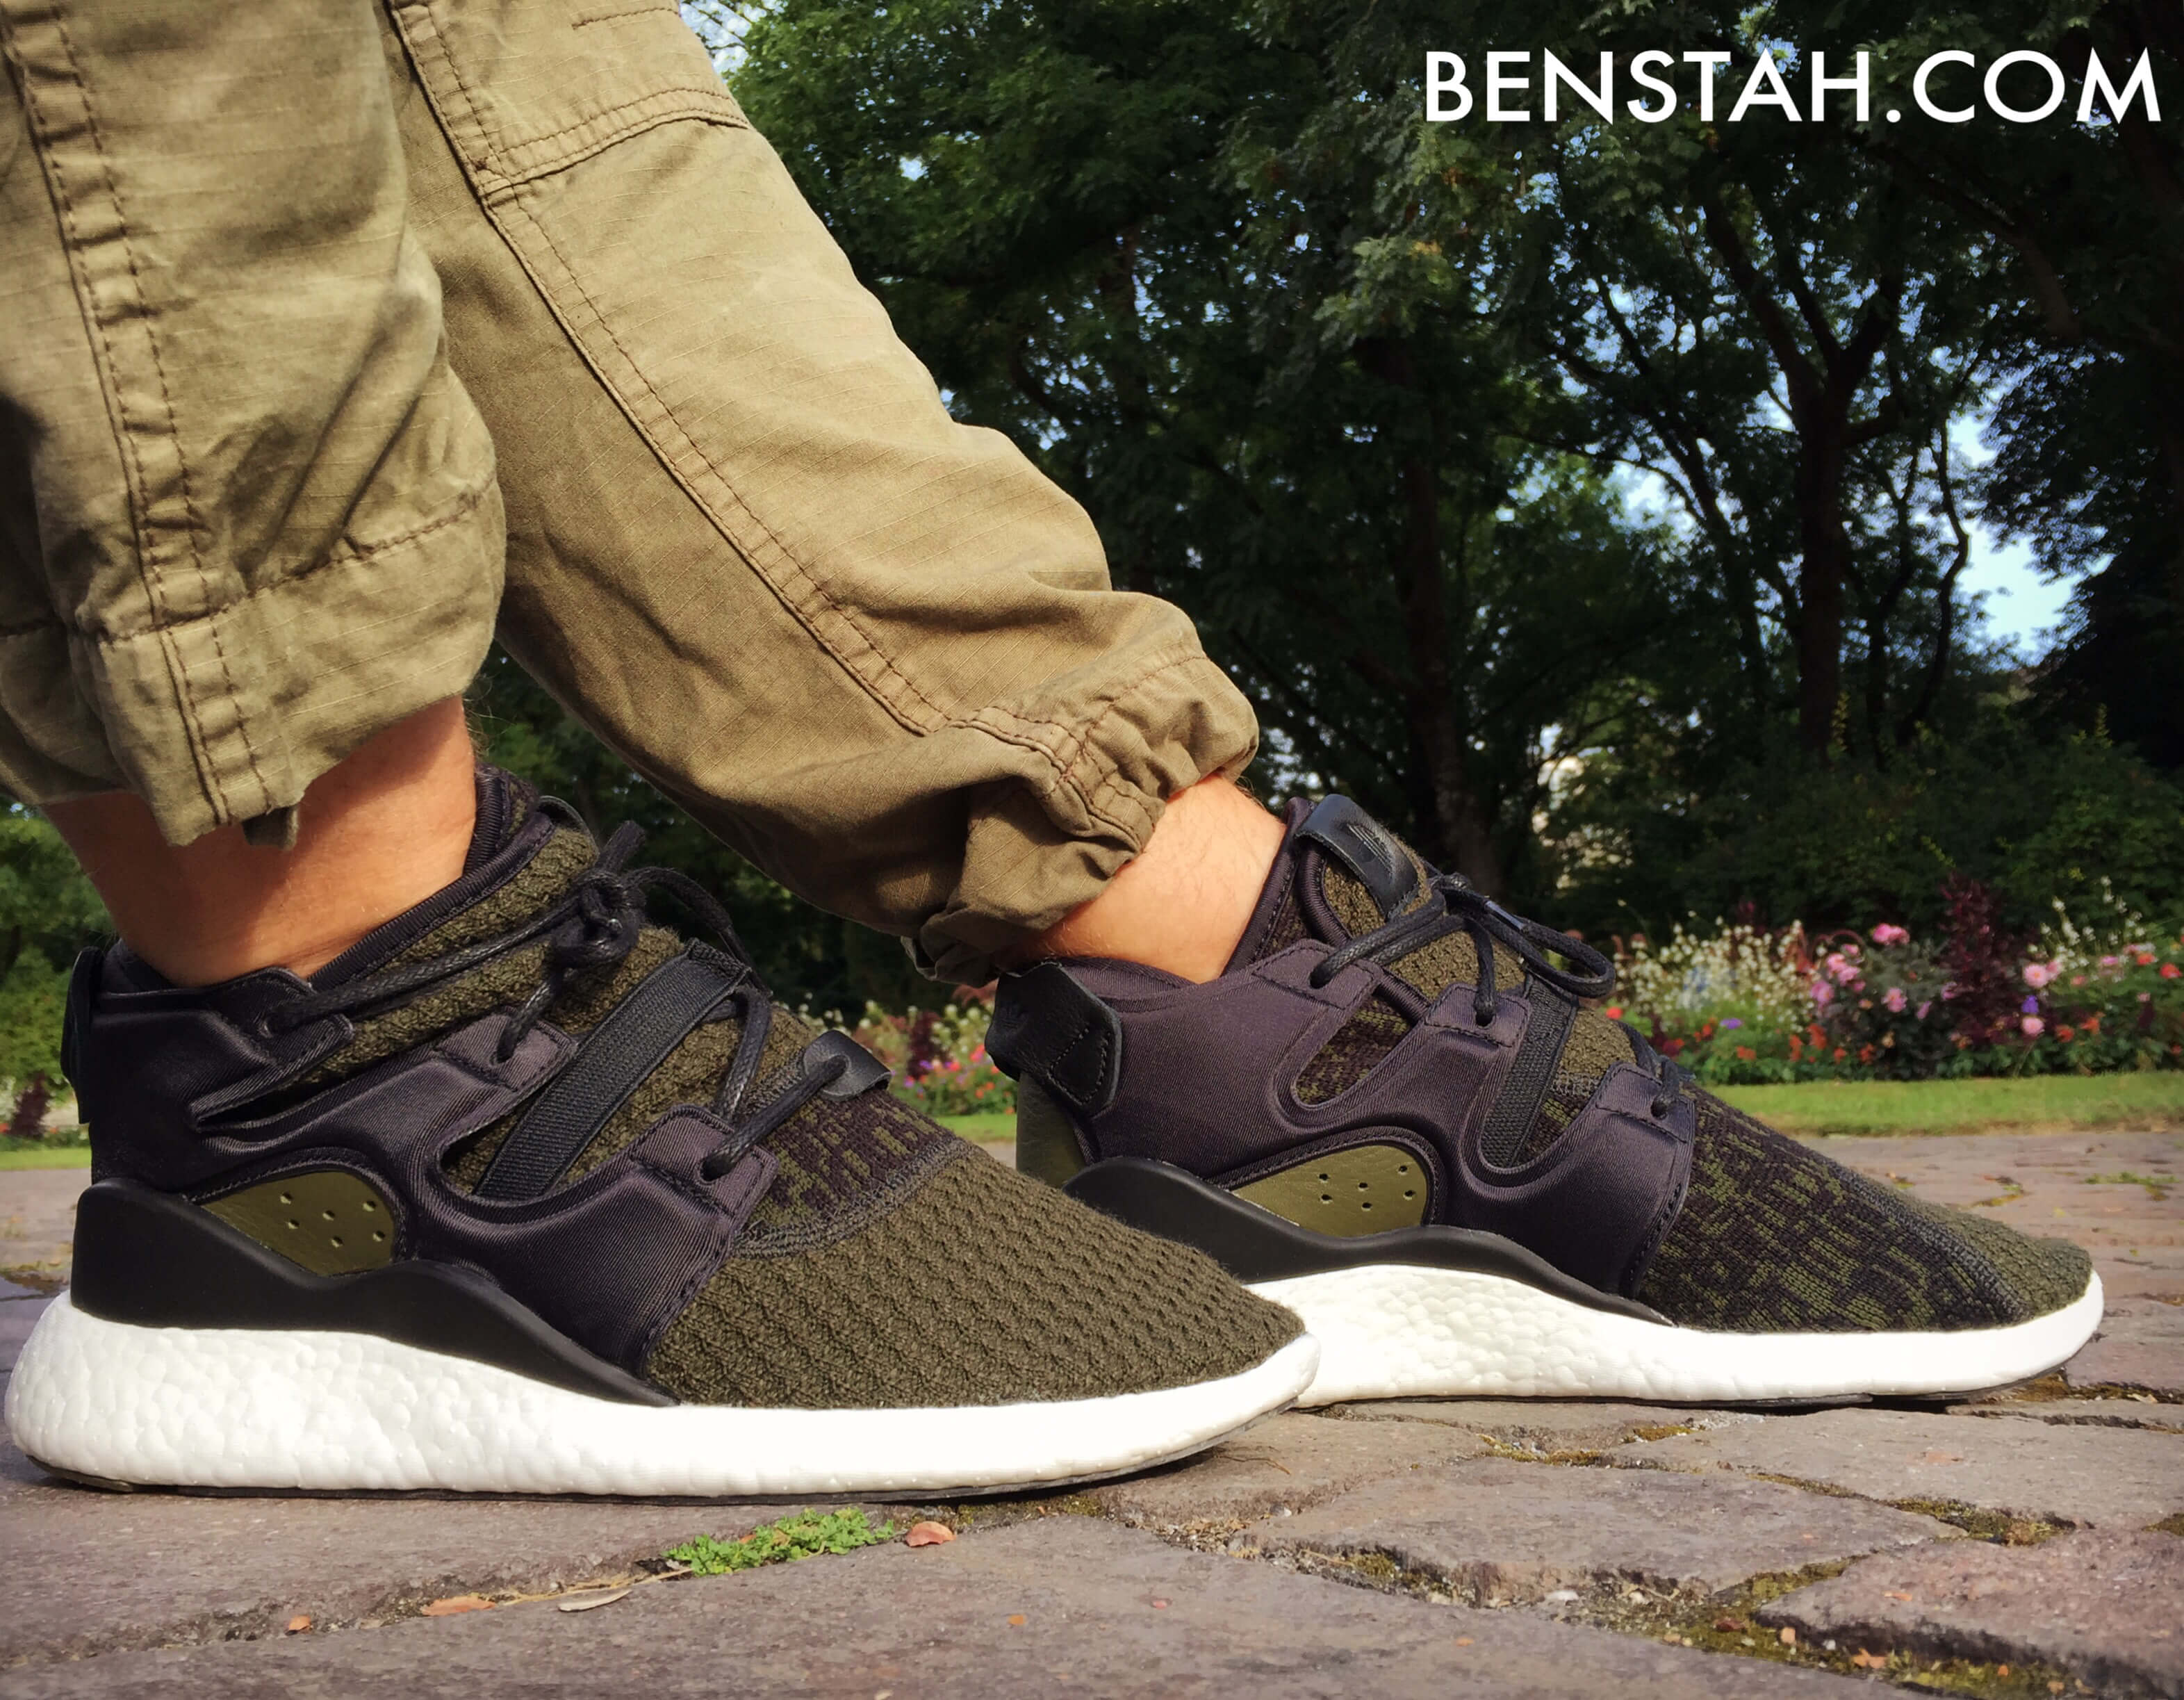 adidas-eqt-2-3-f15-athleisure-side-view-1-benstah-onfeet